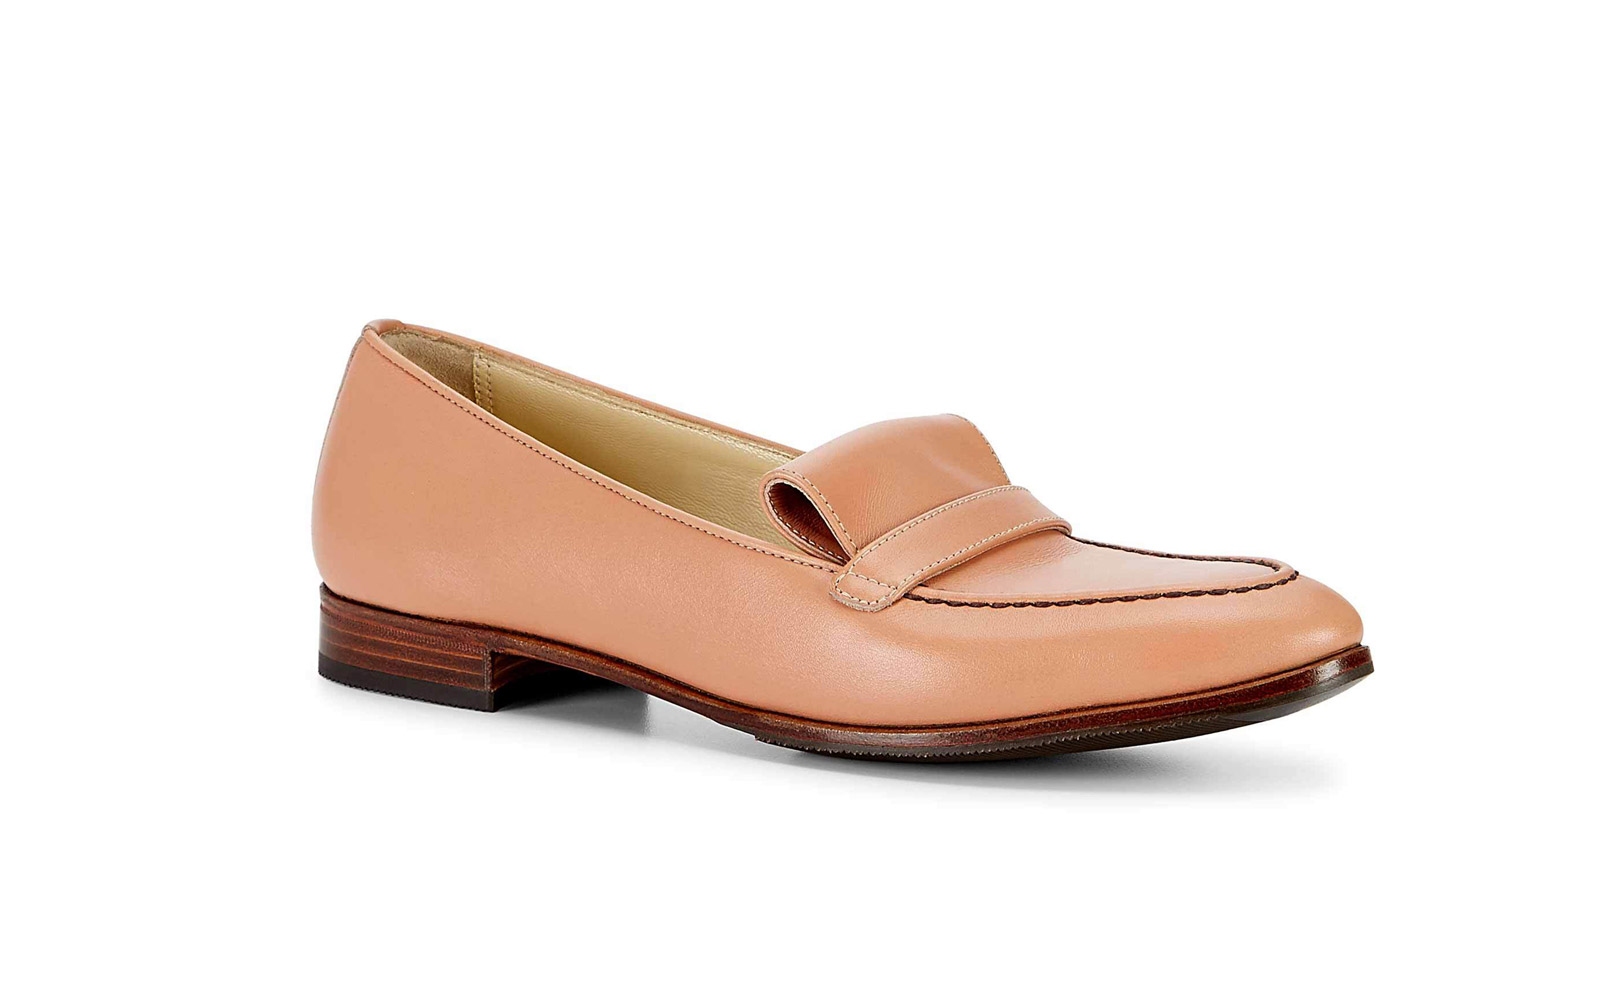 Sarah Flint Alysia Loafers